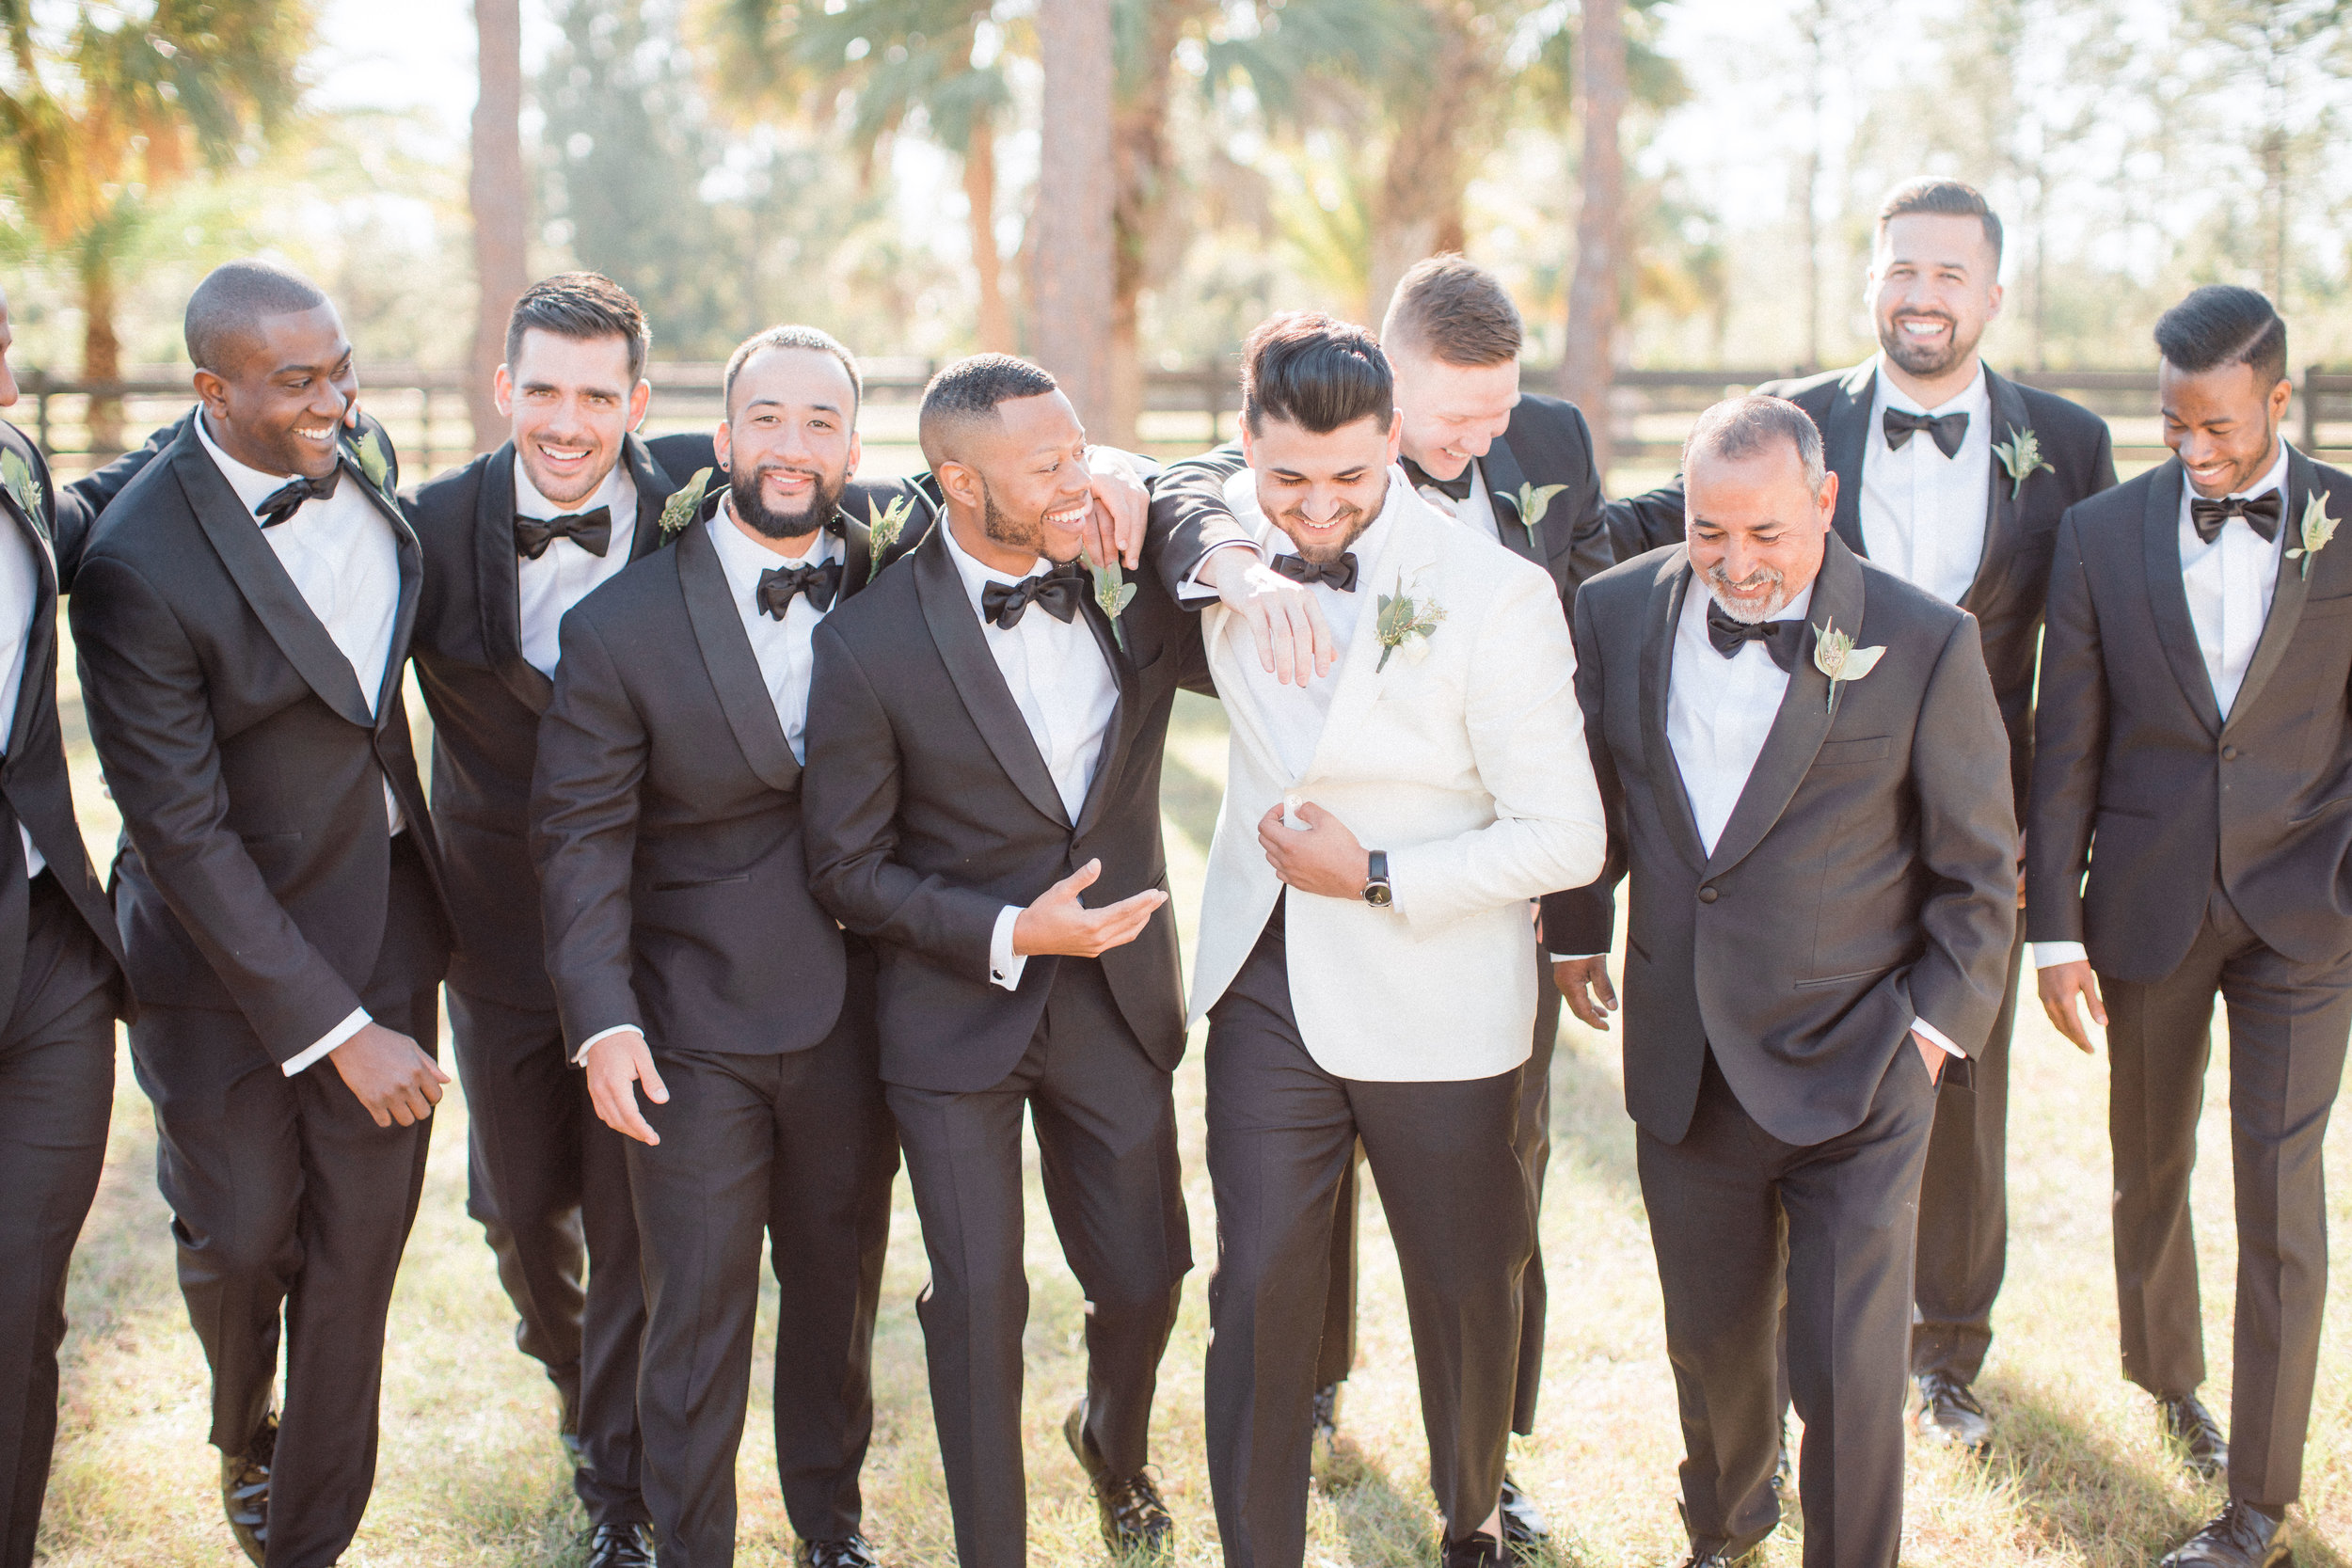 bridal-party-groomsman-florida-wedding-fort-myers-la-casa-toscana-outdoor-ceremony-winter-wedding-brown-chairs-white-gazebo-planned-by-mostly-becky-weddings-traveling-wedding-planner-destination-wedding-lakeside-bridal-portraits-bride-groom-black-tie-tux-formal-wedding